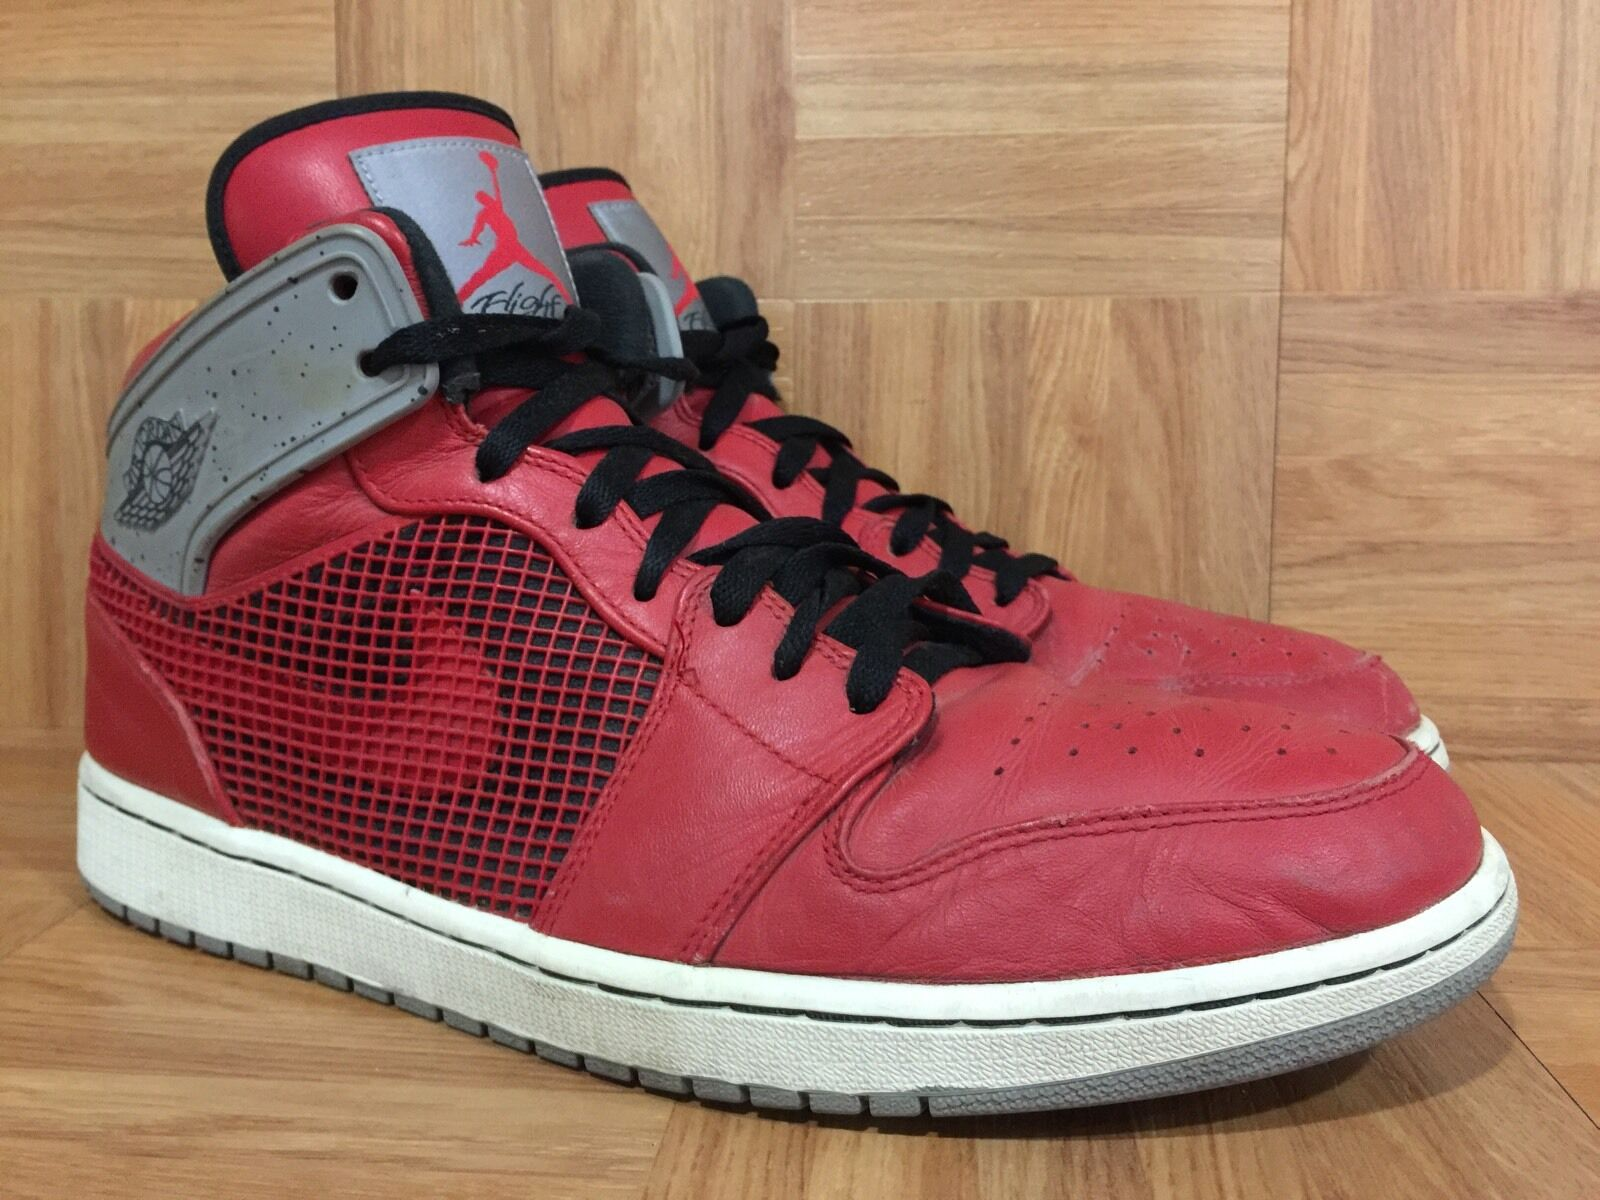 RARE� Nike Air Jordan 1 Retro '89 TORO Bravo Fire Red Cement Gray 13 599873-602